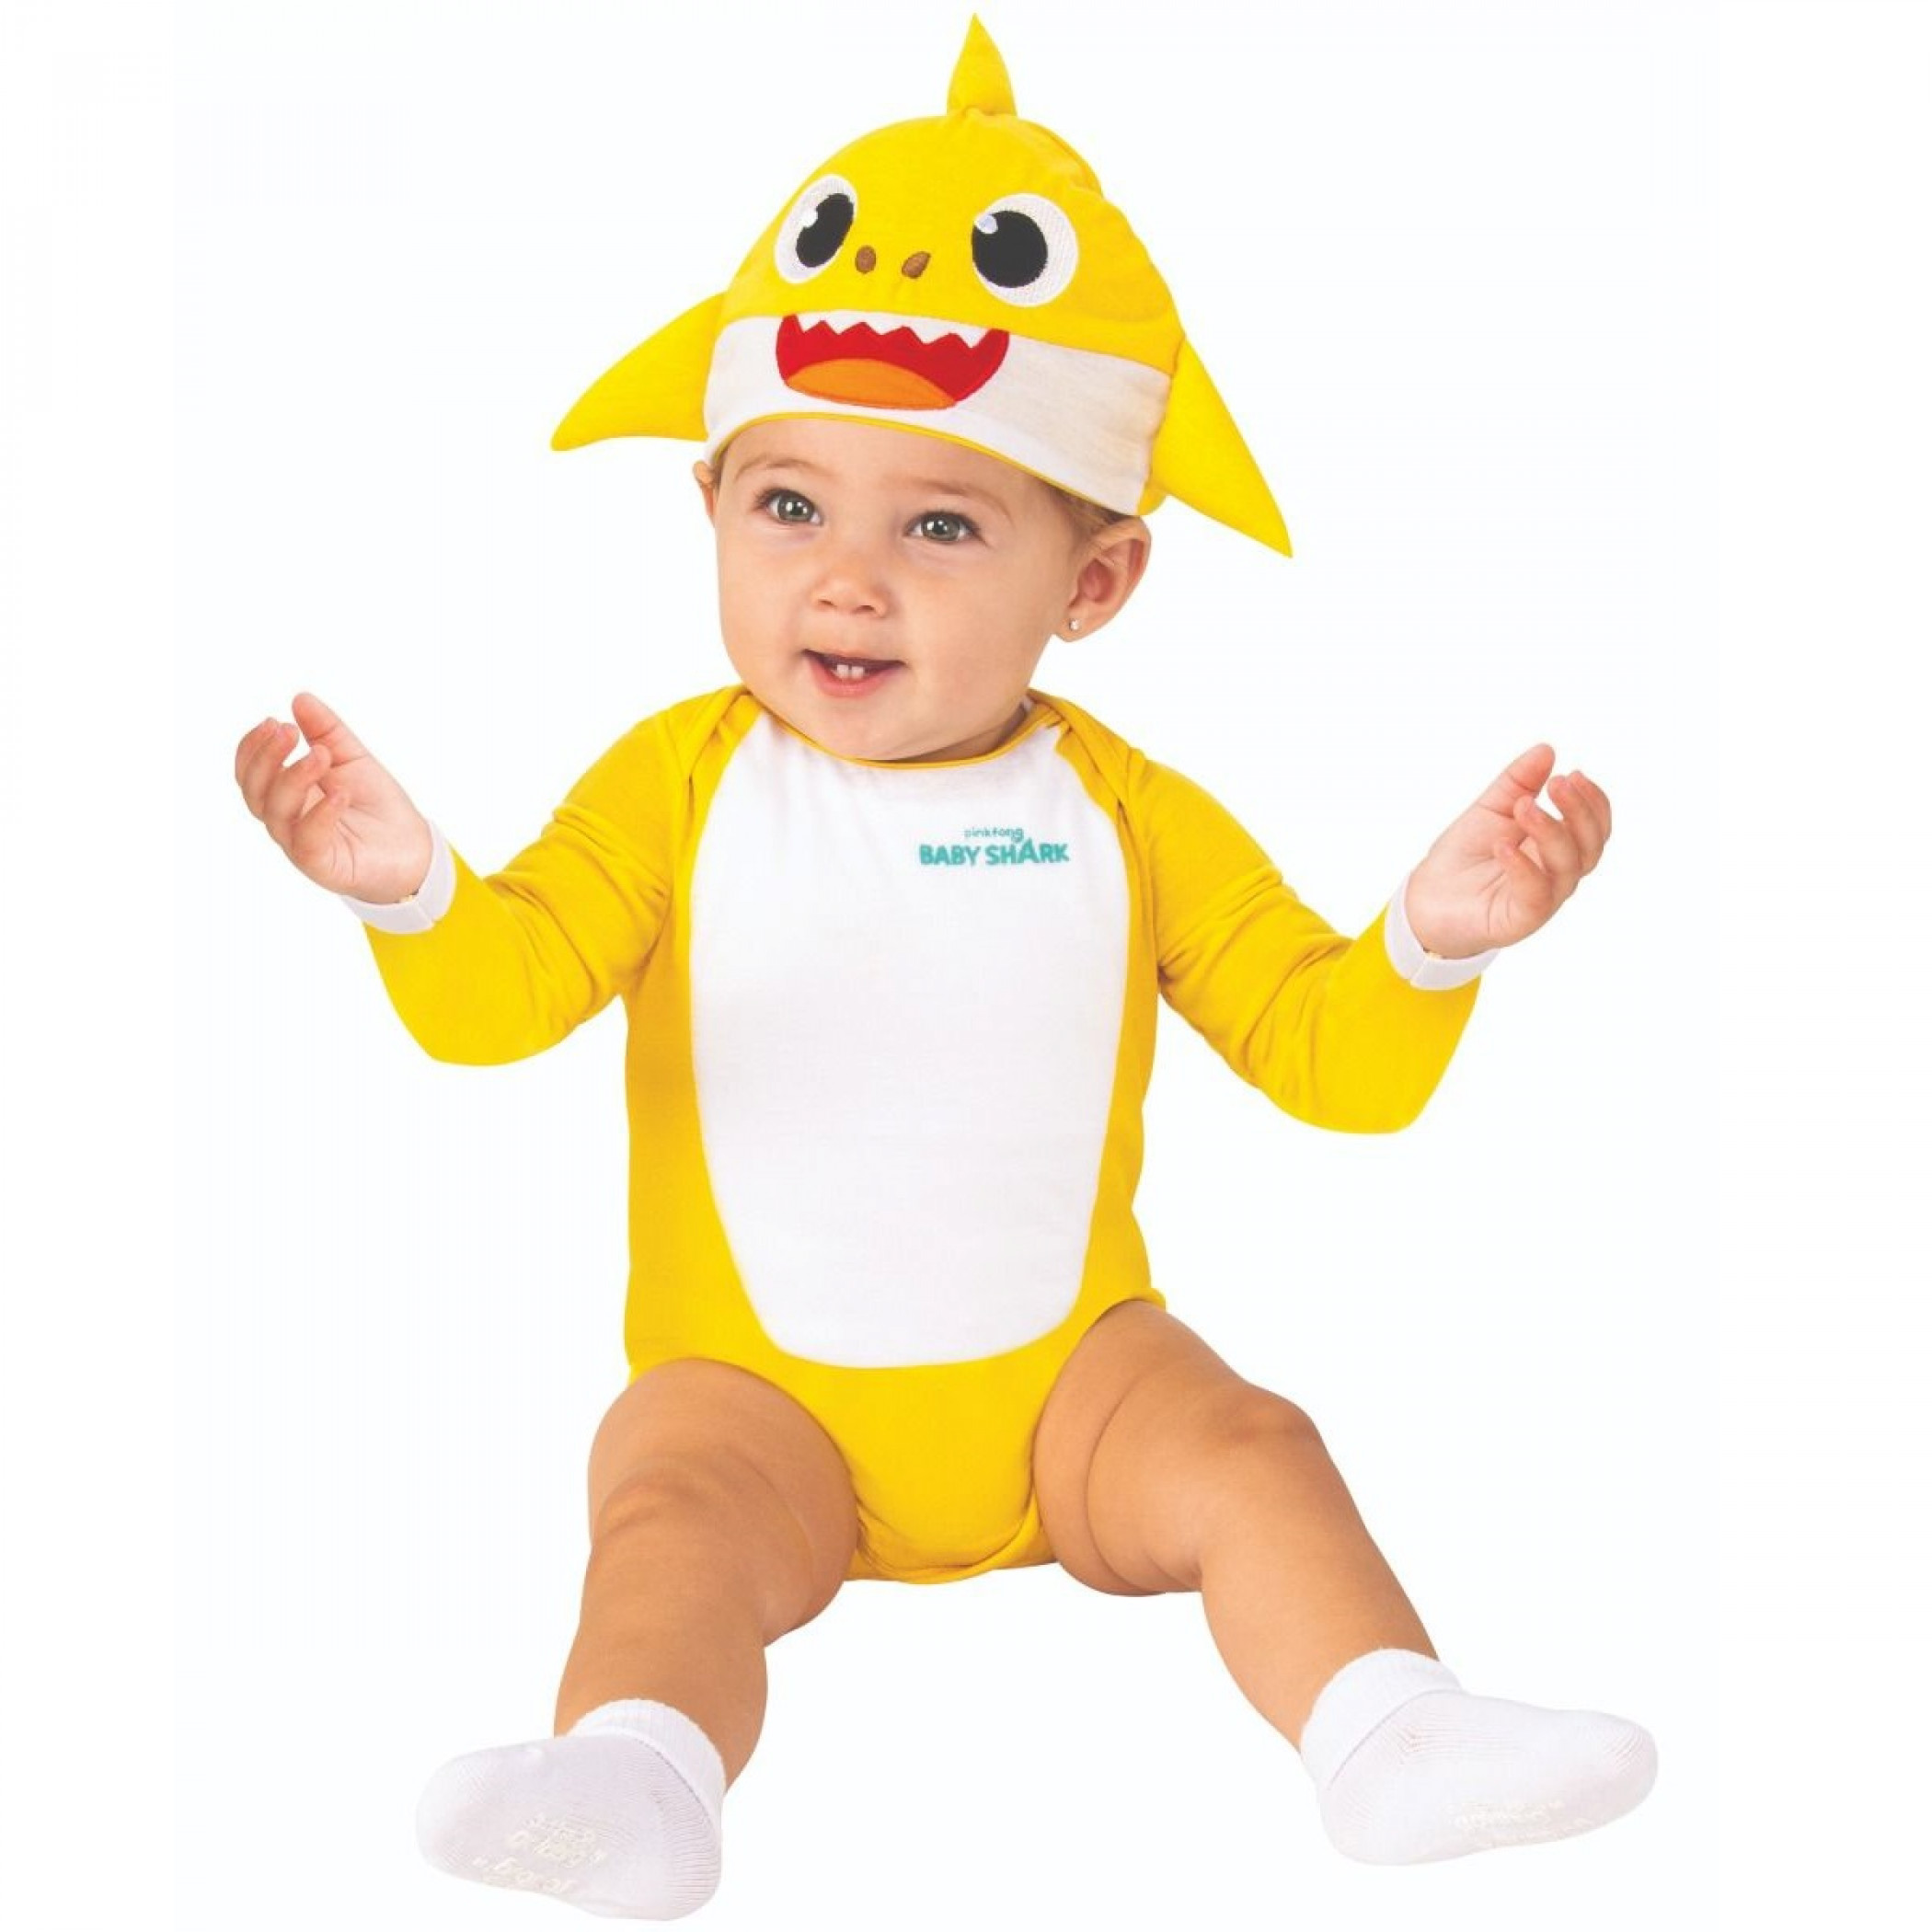 Baby Shark Toddler Costume